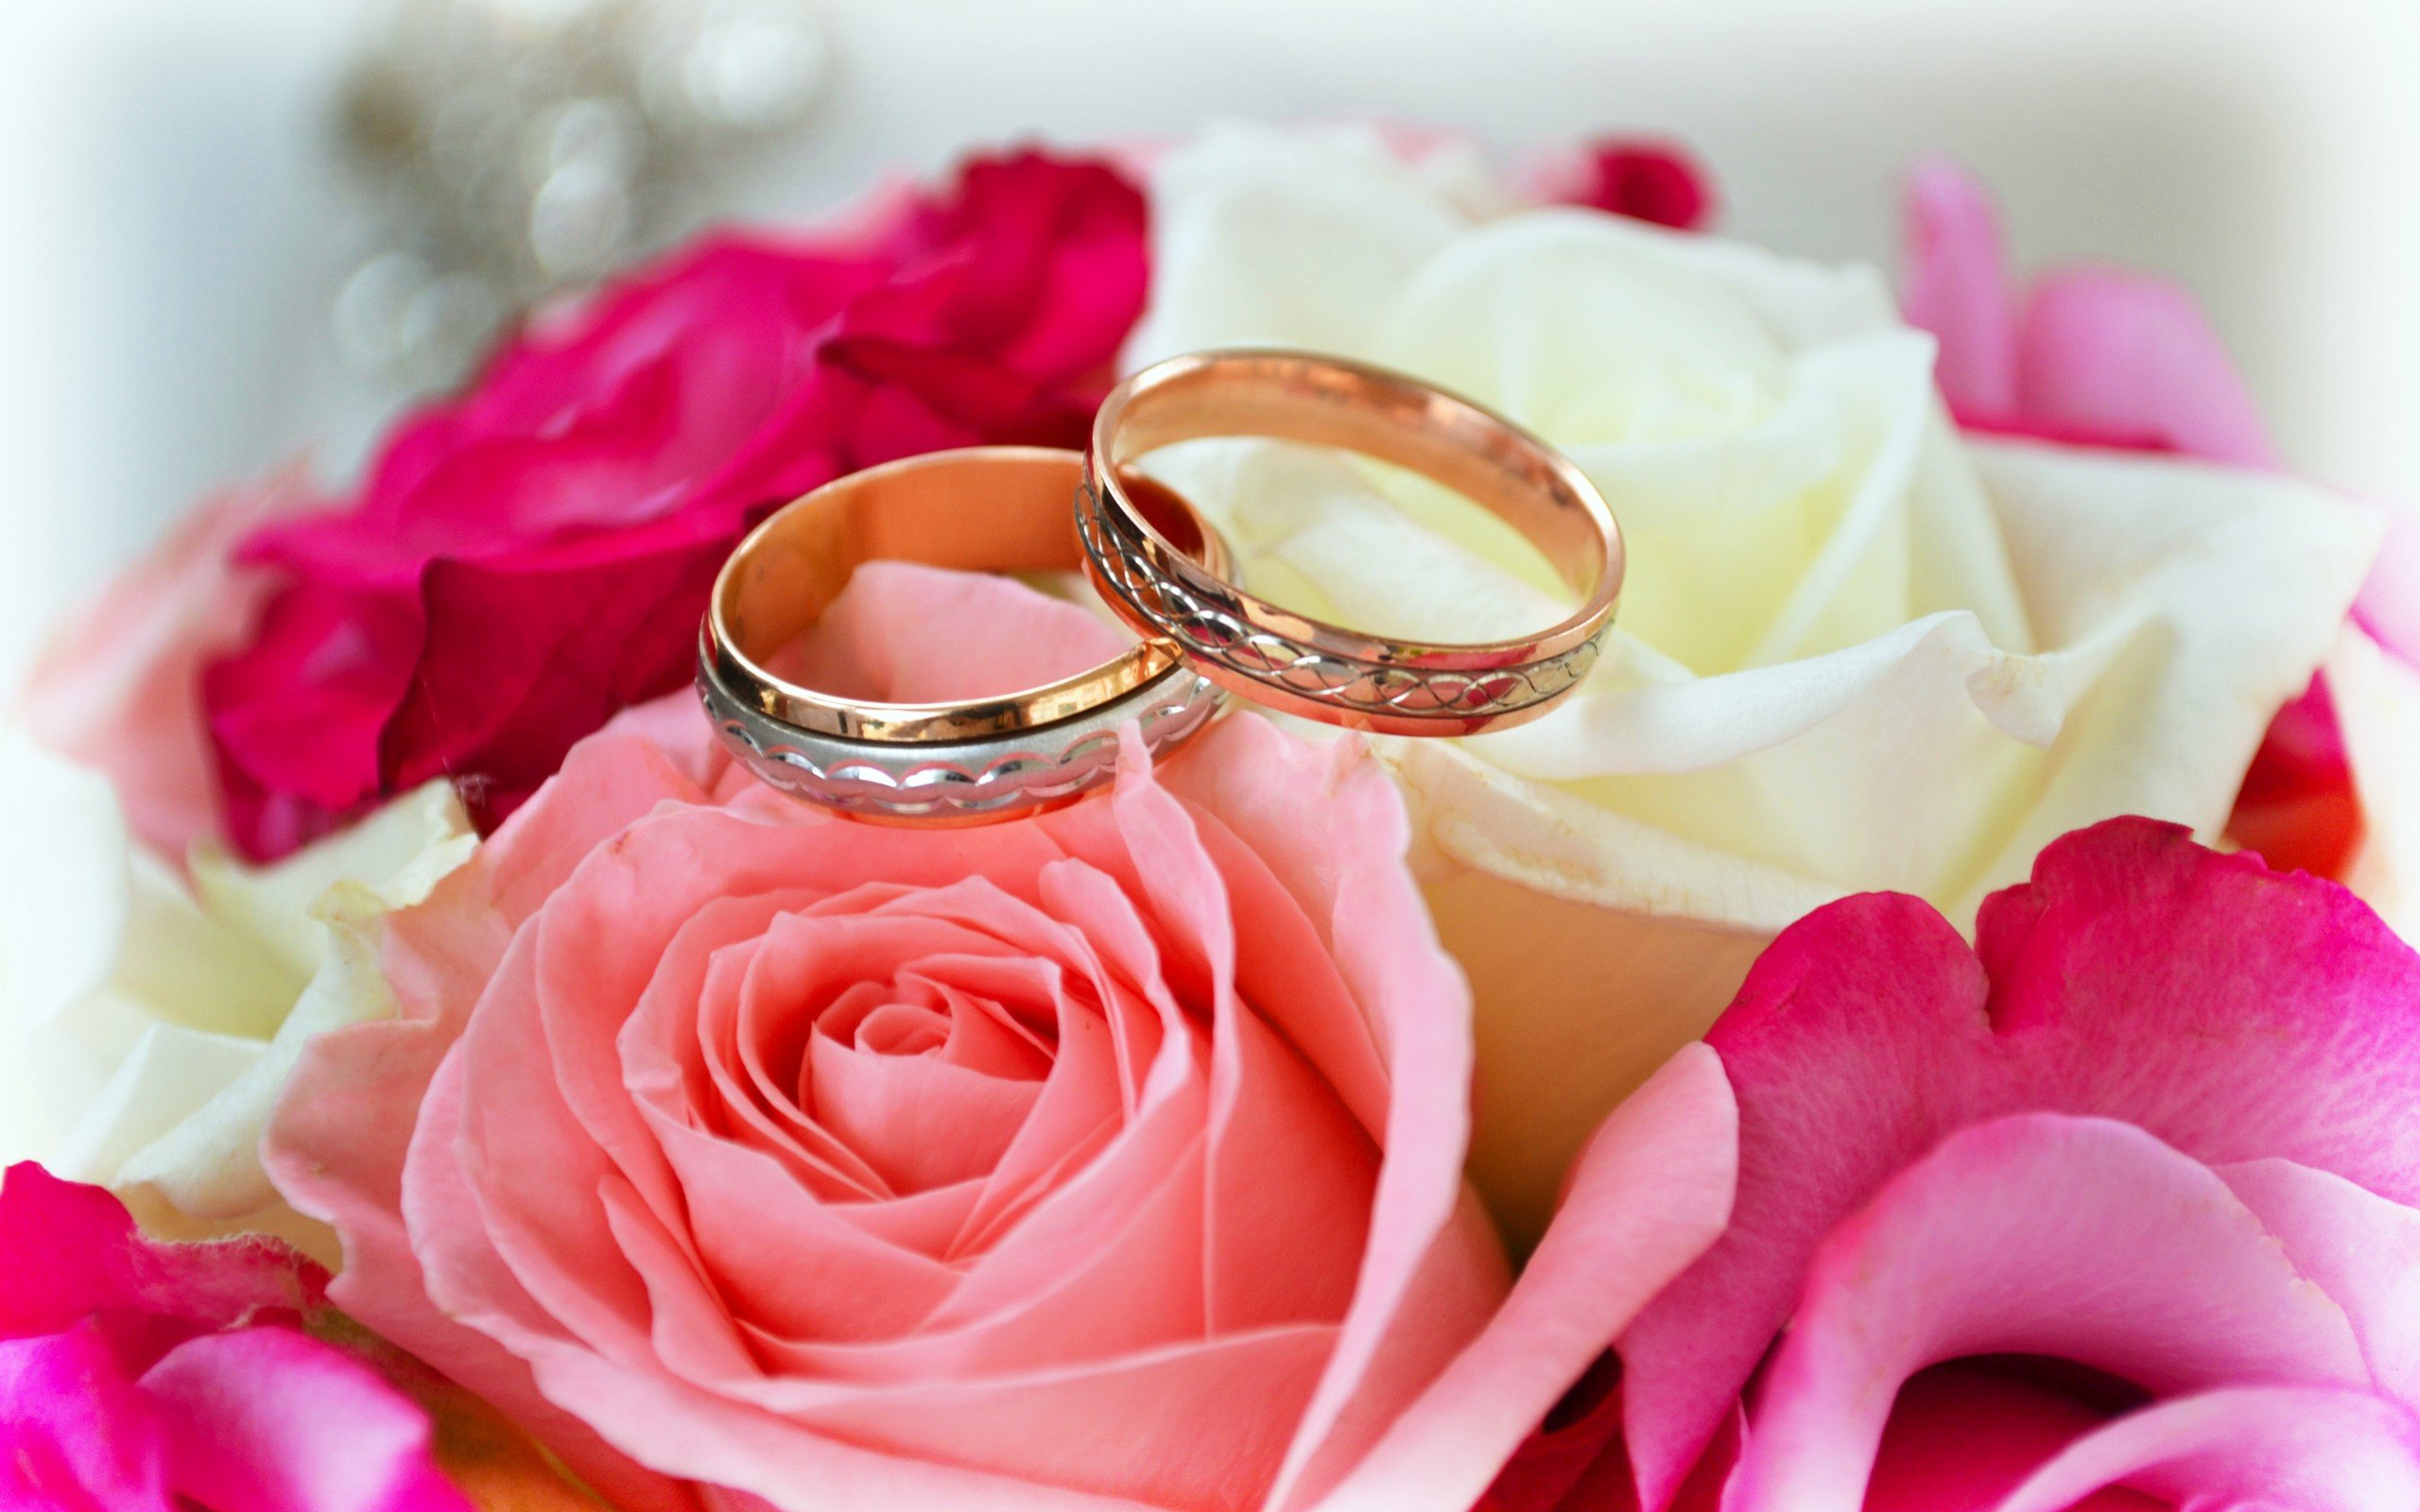 Wedding rings and bible background - Clamart